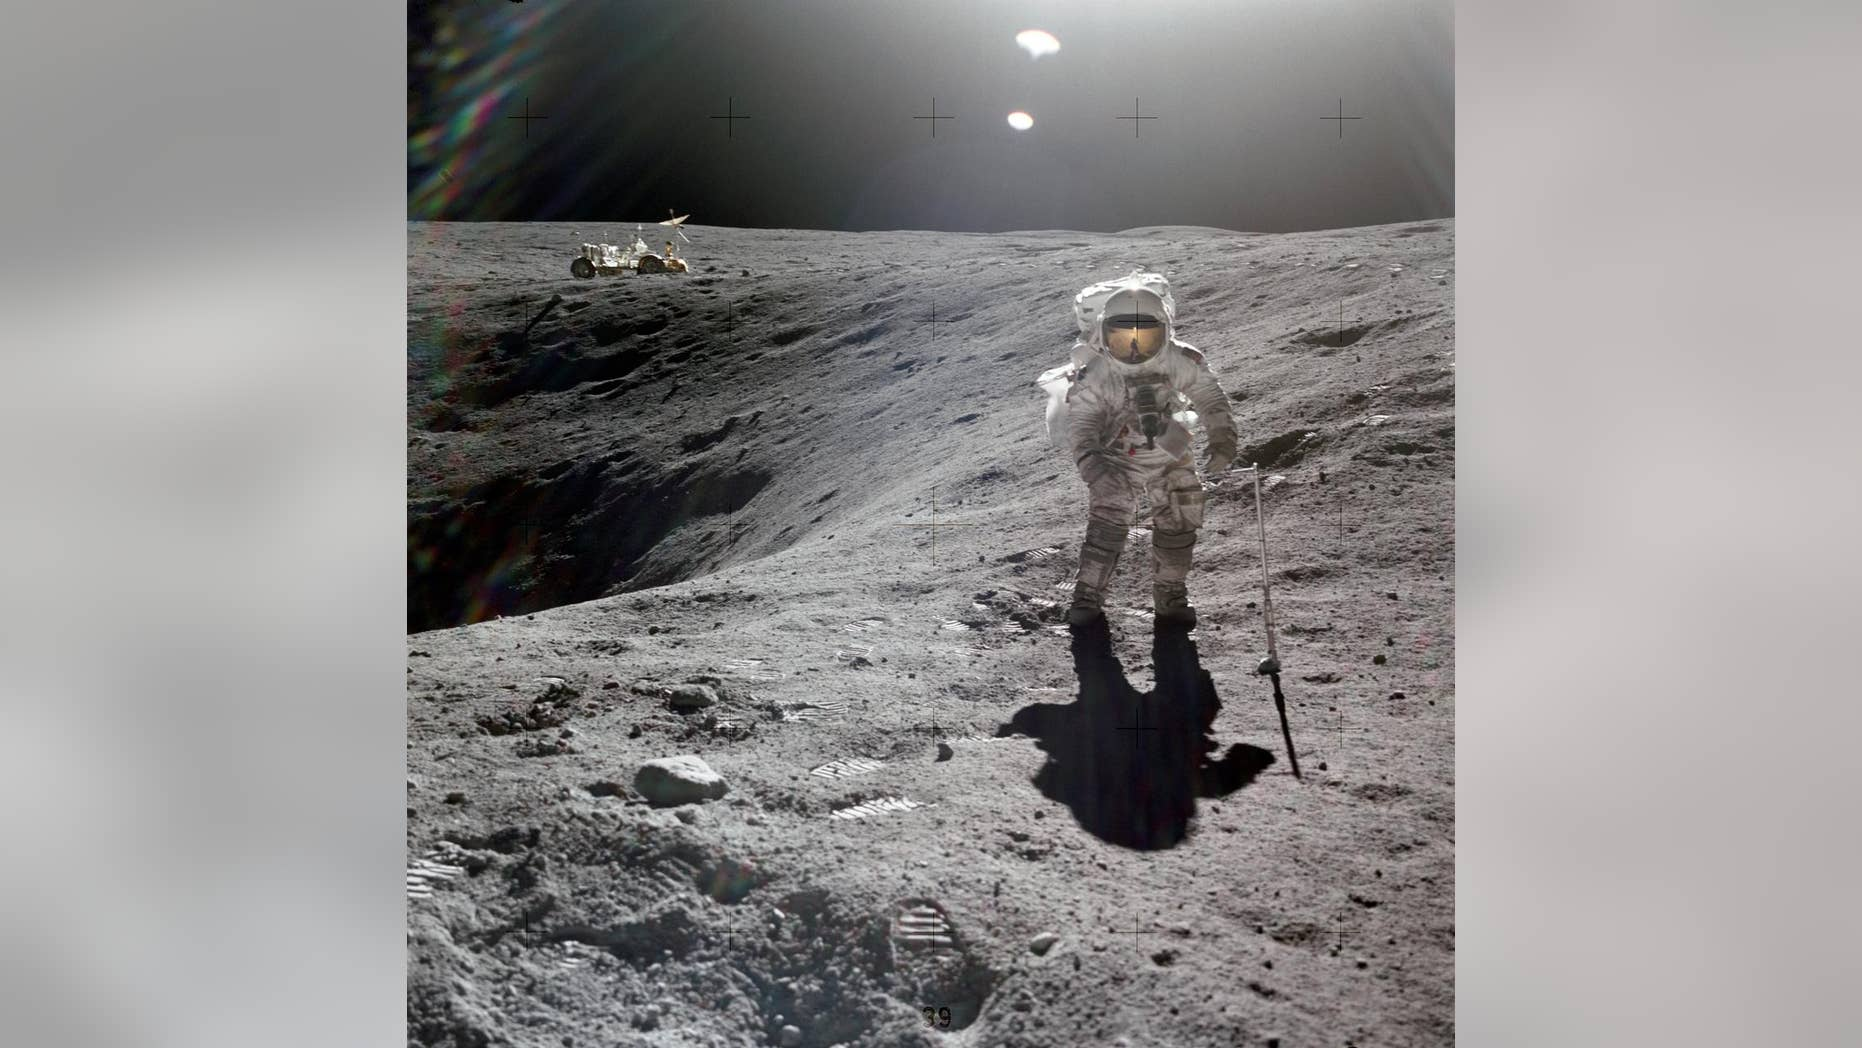 Charles Duke, Apollo 16's lunar module pilot, is photographed collecting lunar samples at Station No. 1, during the first Apollo 16 extravehicular activity (EVA), at the Descartes landing site. (NASA)